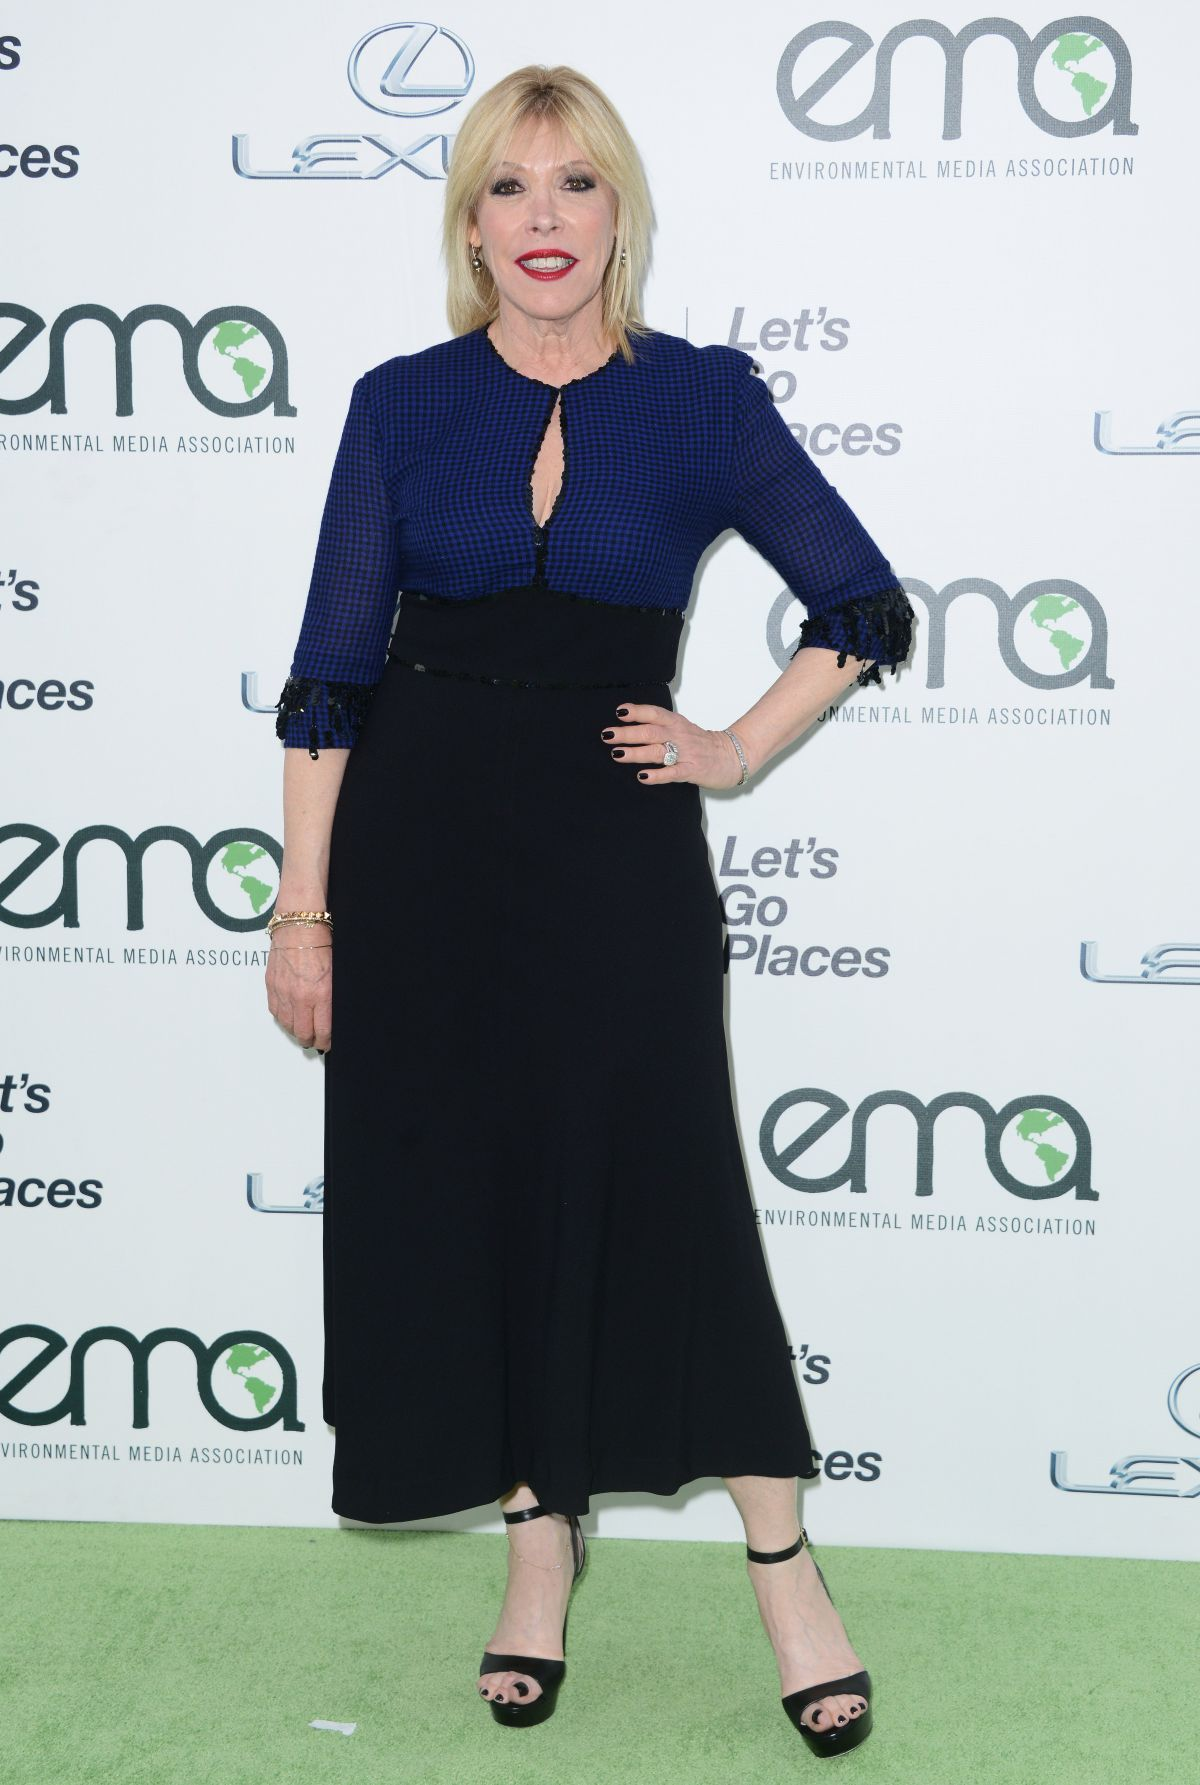 DEBBIE LEVIN at 2015 EMA Awards in Burbank 10/24/2015